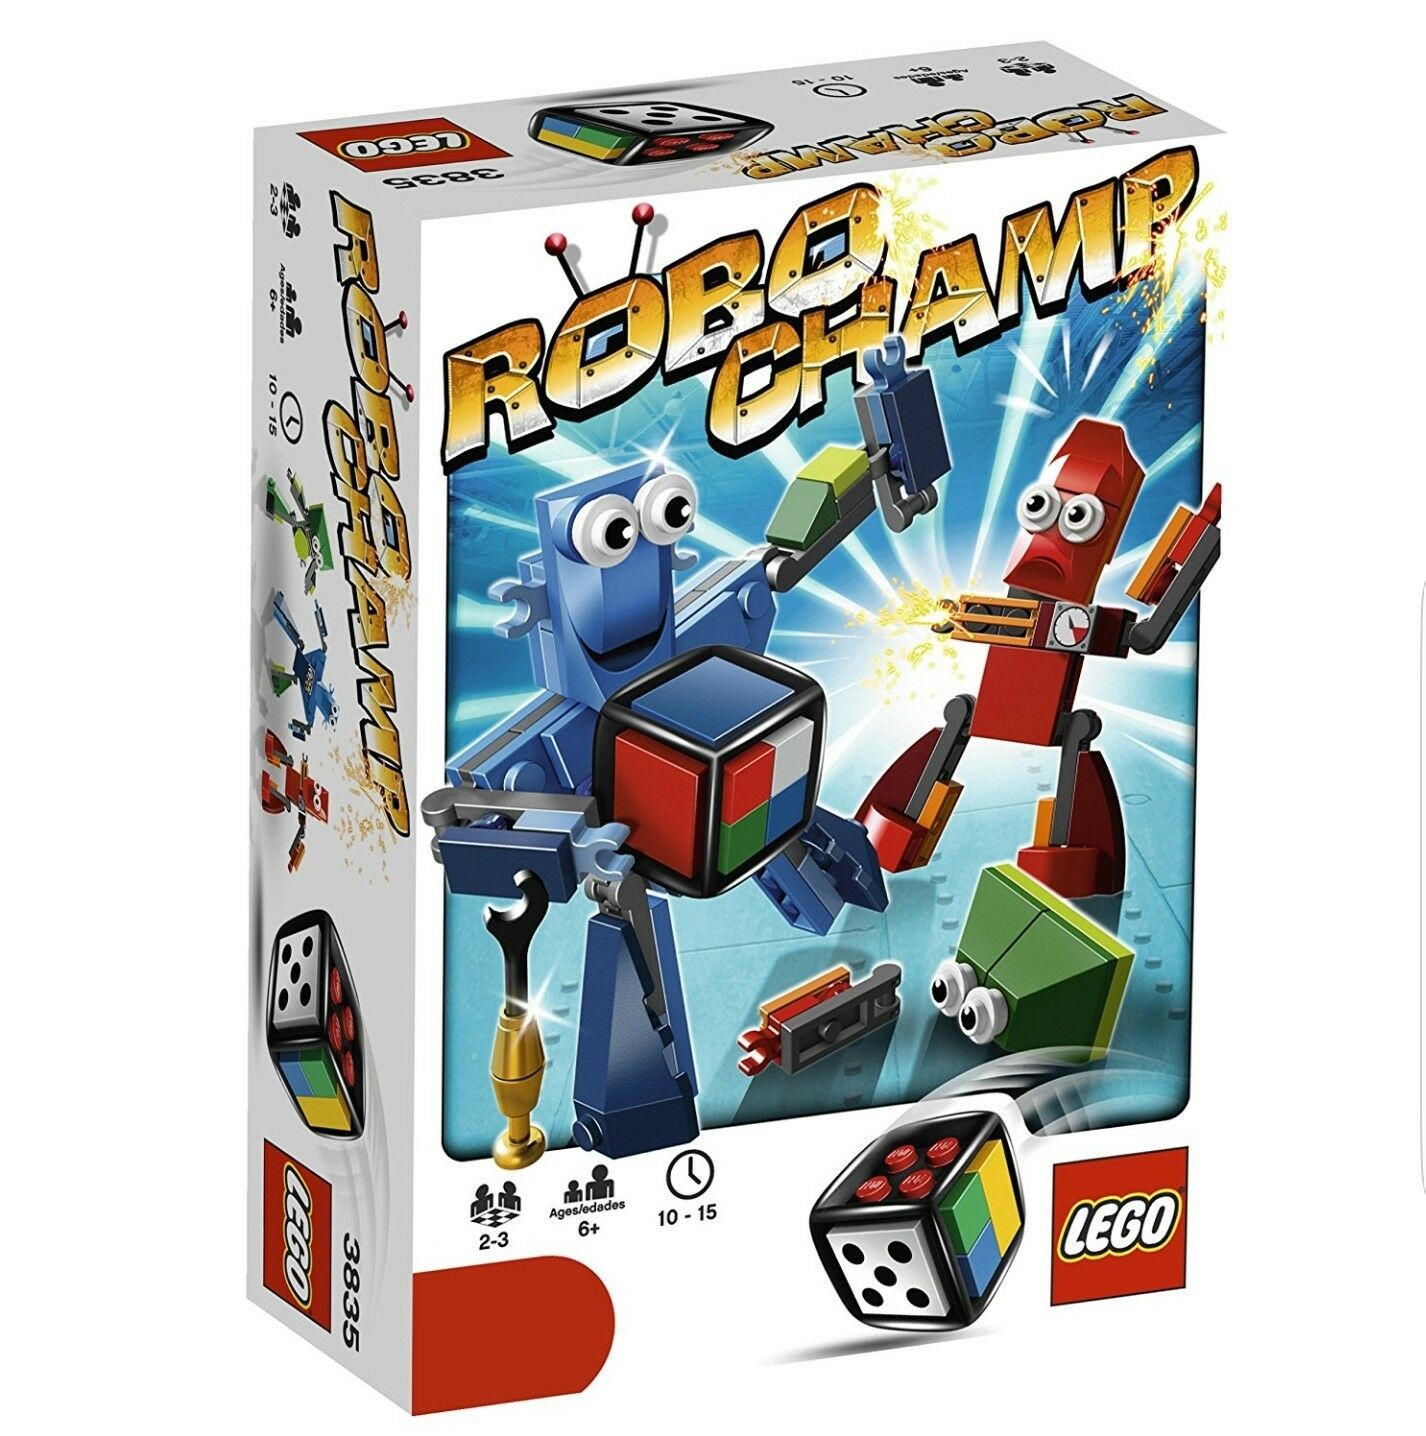 LEGO Games 3835 Robo Champ BRAND NEW SHRINK WRAPPED